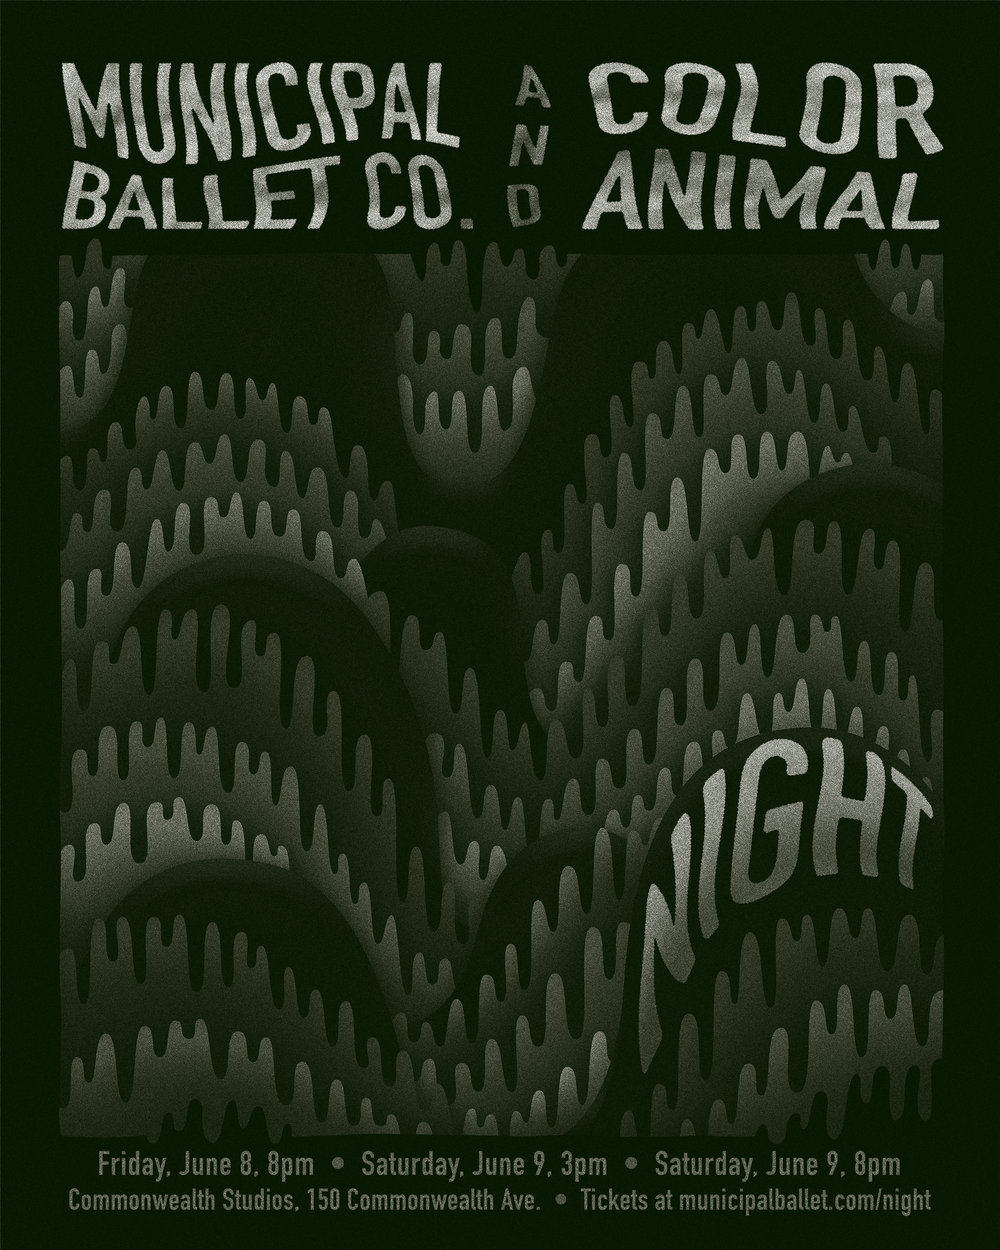 NIGHT POSTER 8X10 final final light 2 GREEN.jpg